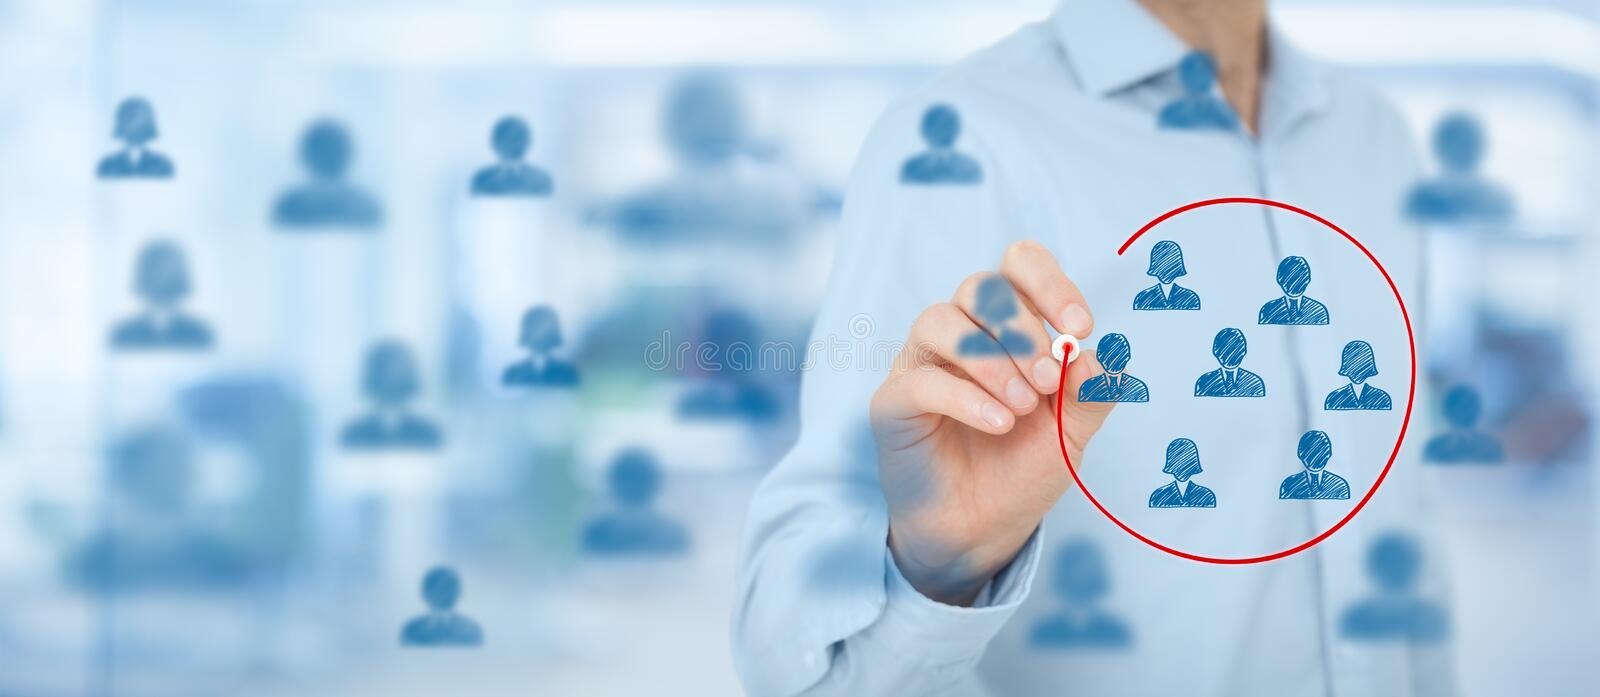 Marketing segmentation stock image